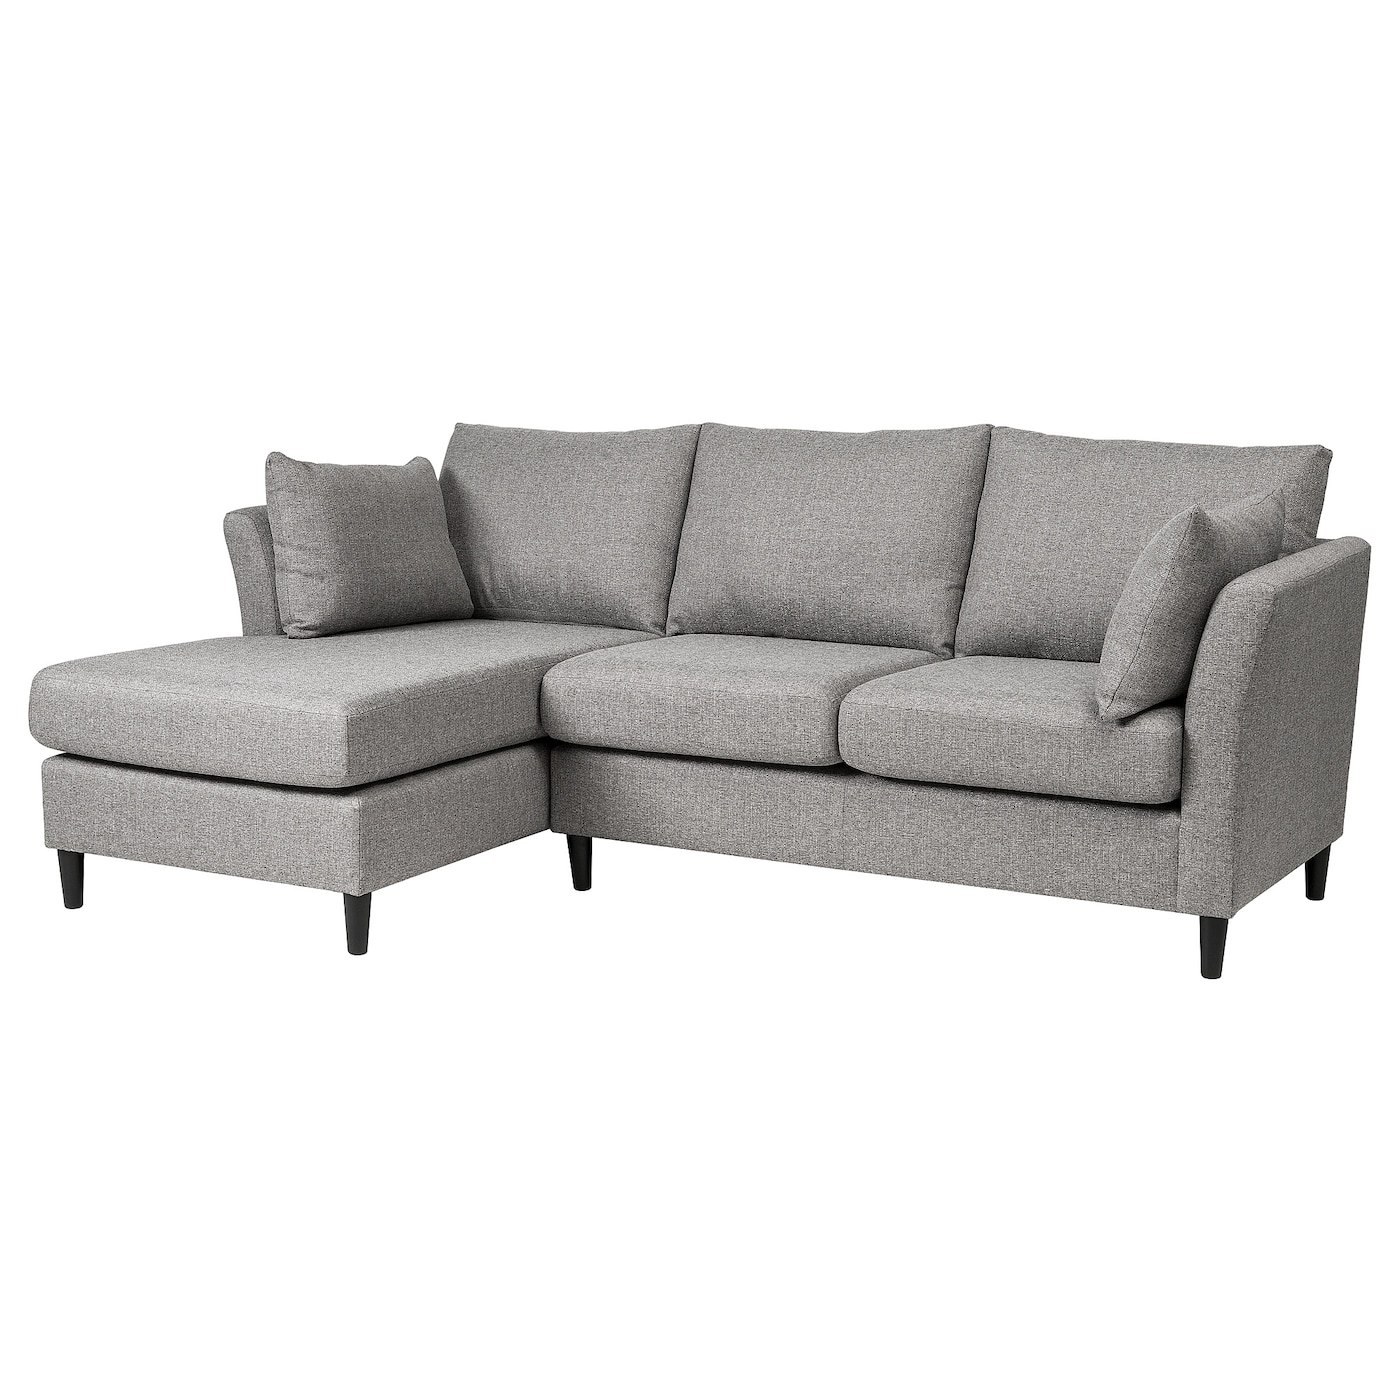 IKEA BANKERYD 2-seat sofa w chaise longue, left